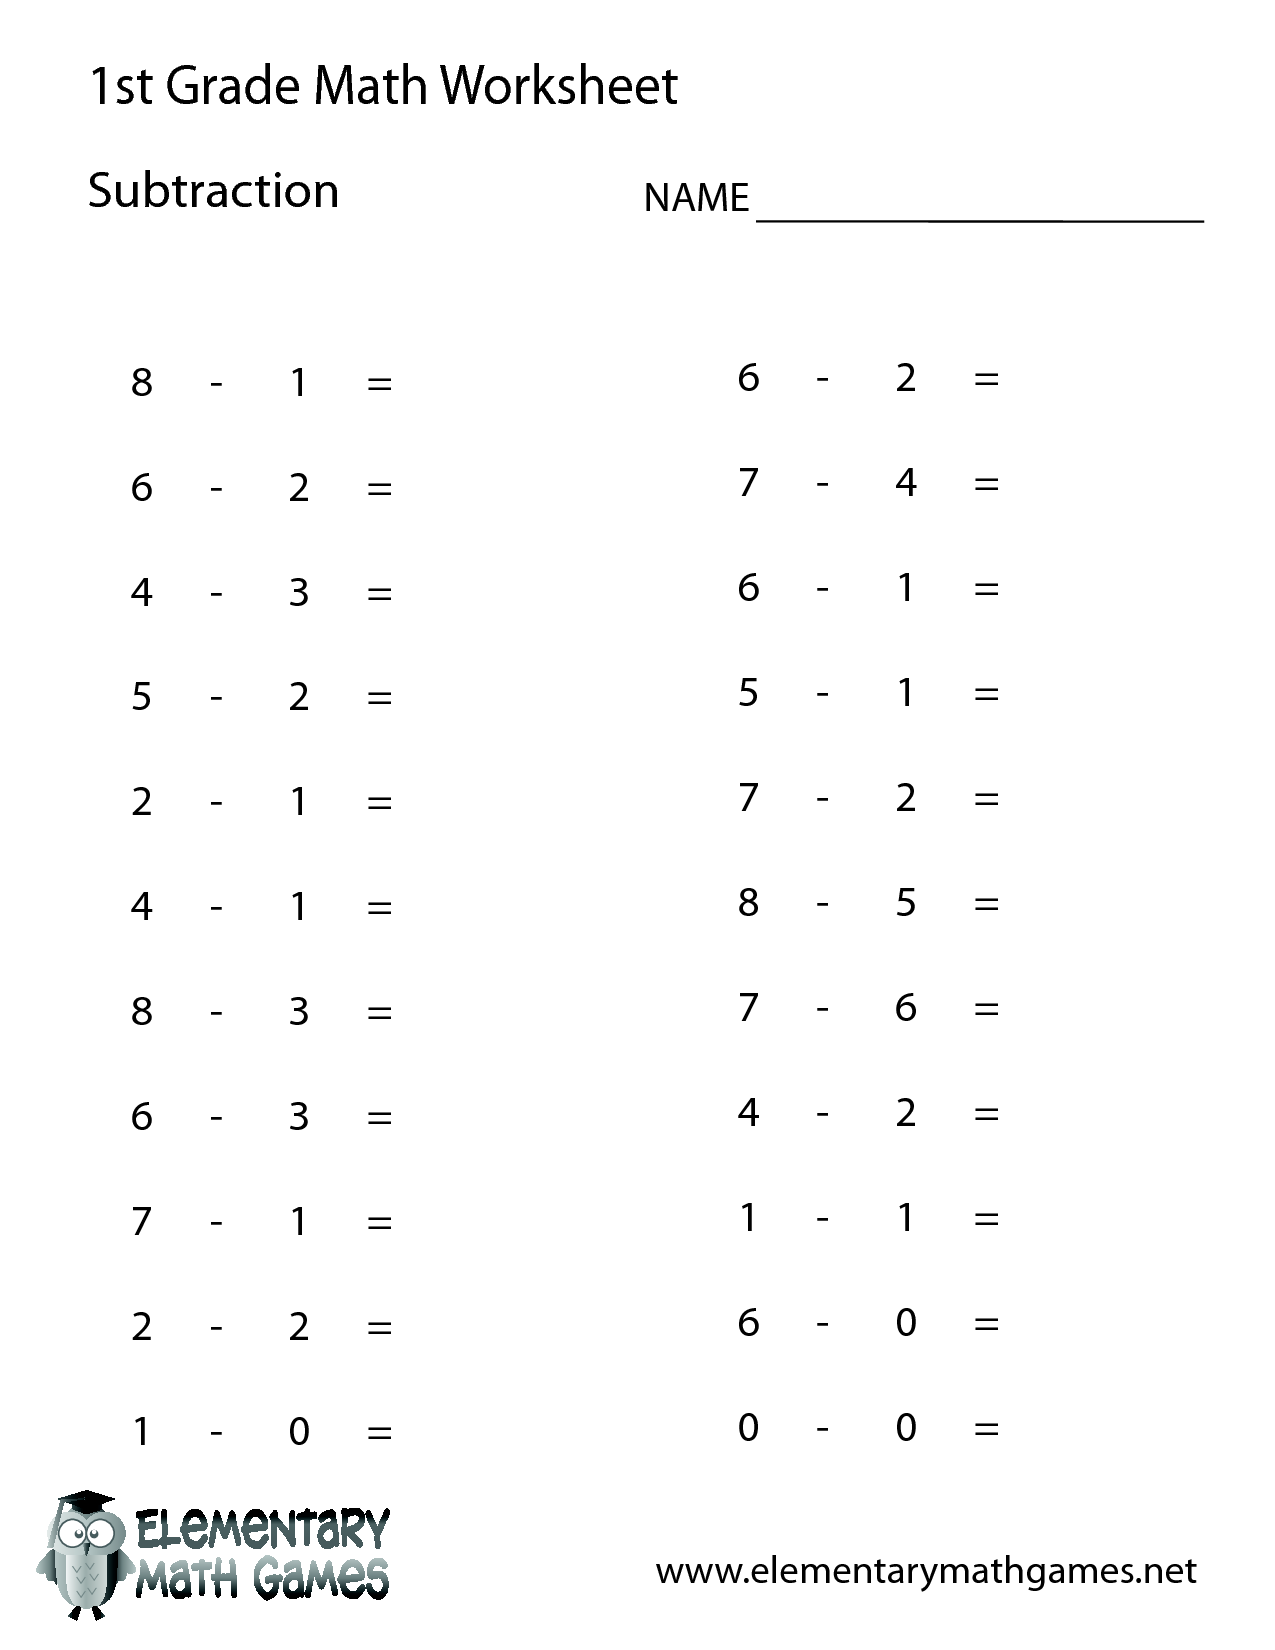 first grade math Subtraction Timed 03 – Images of Math Worksheets